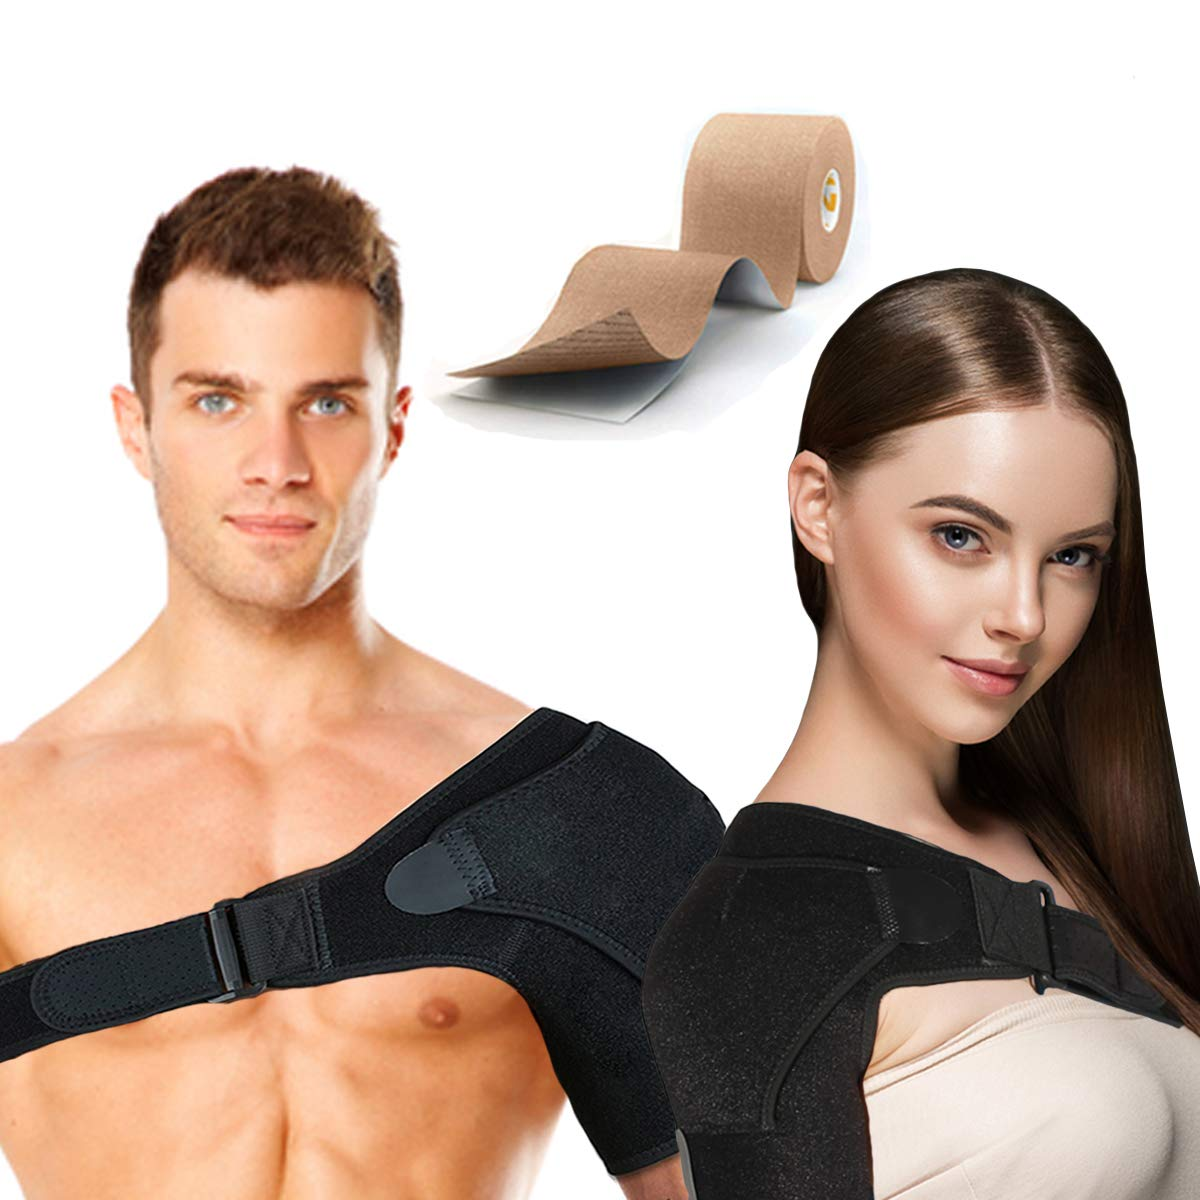 Shoulder Brace Rotator Cuff Support for Men and Women for Injury Prevention, Dislocated AC Joint, Arthritis, Tendonitis with Adjustable Strap, Pressure Pad + Kinesiology Tape by HOKI